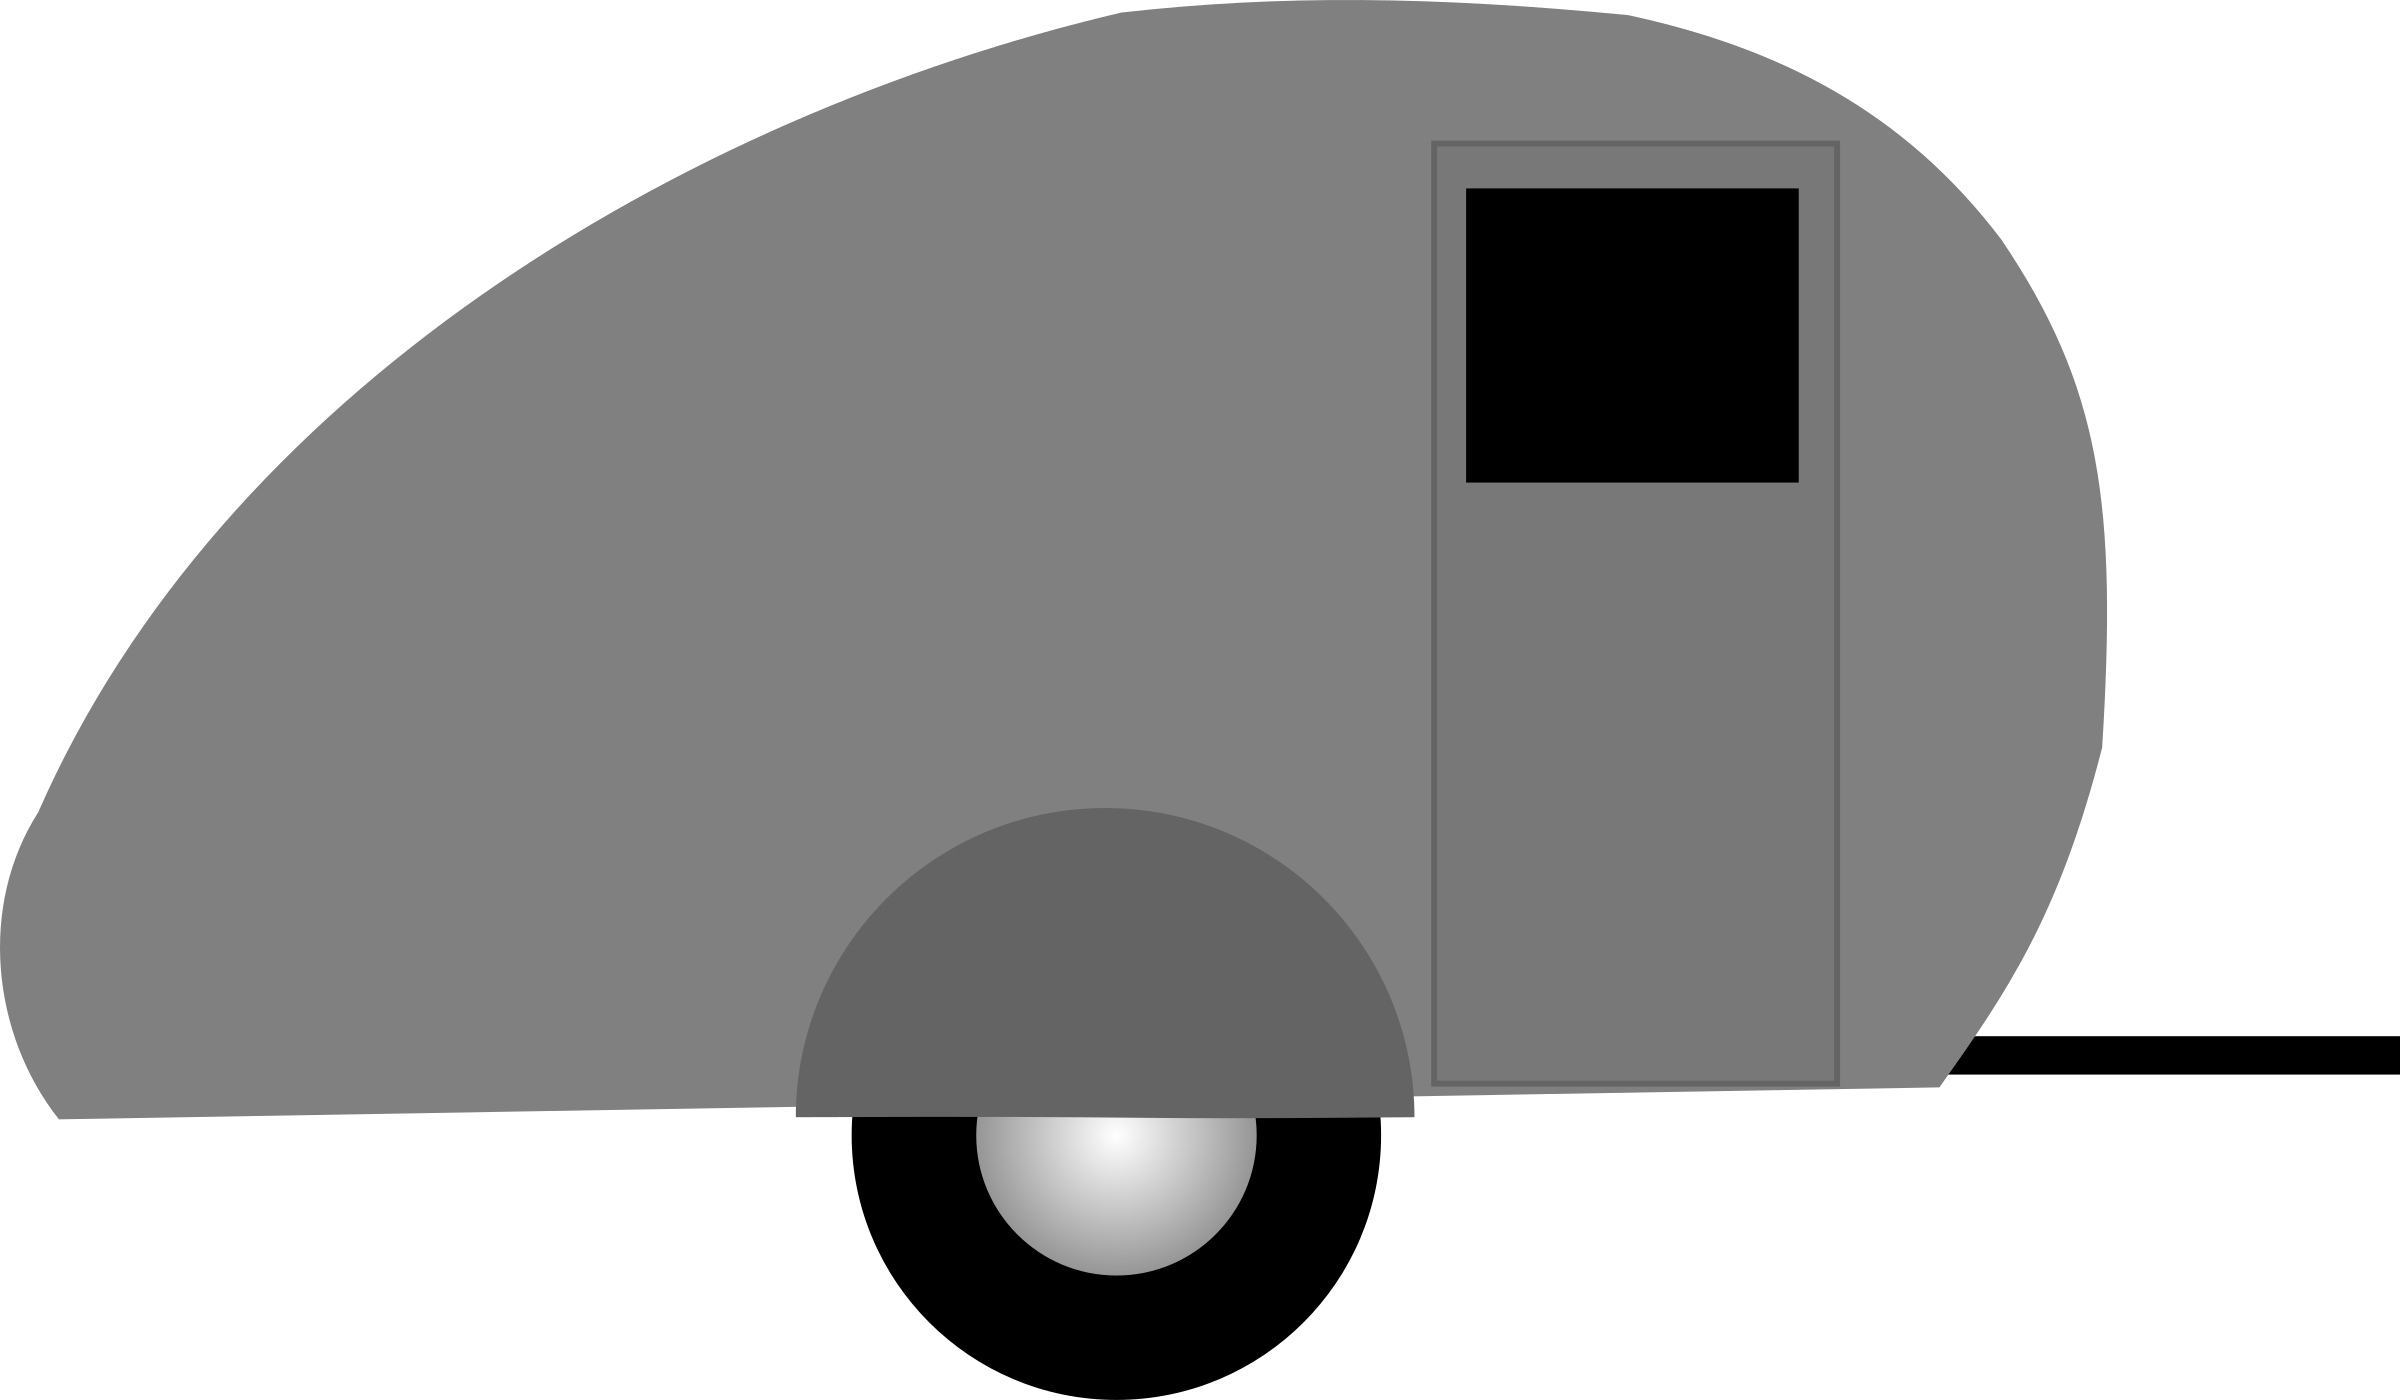 Teardrop trailer by liftarn